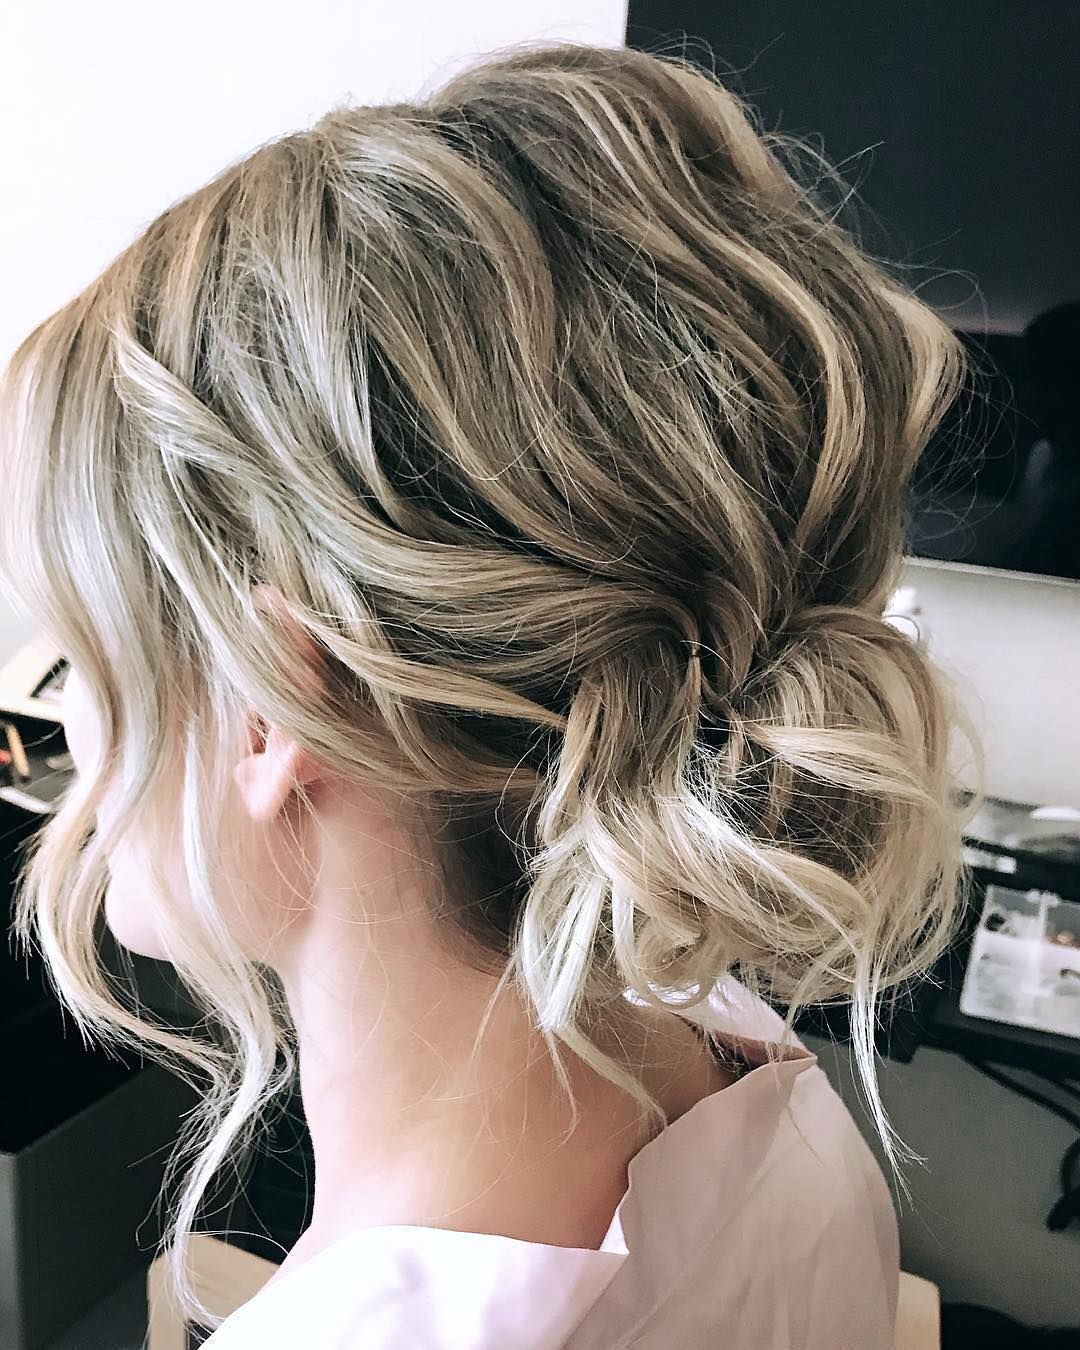 Pin By Birchbox On Hair Up Do S Short Wedding Hair Updos For Medium Length Hair Short Hair Updo